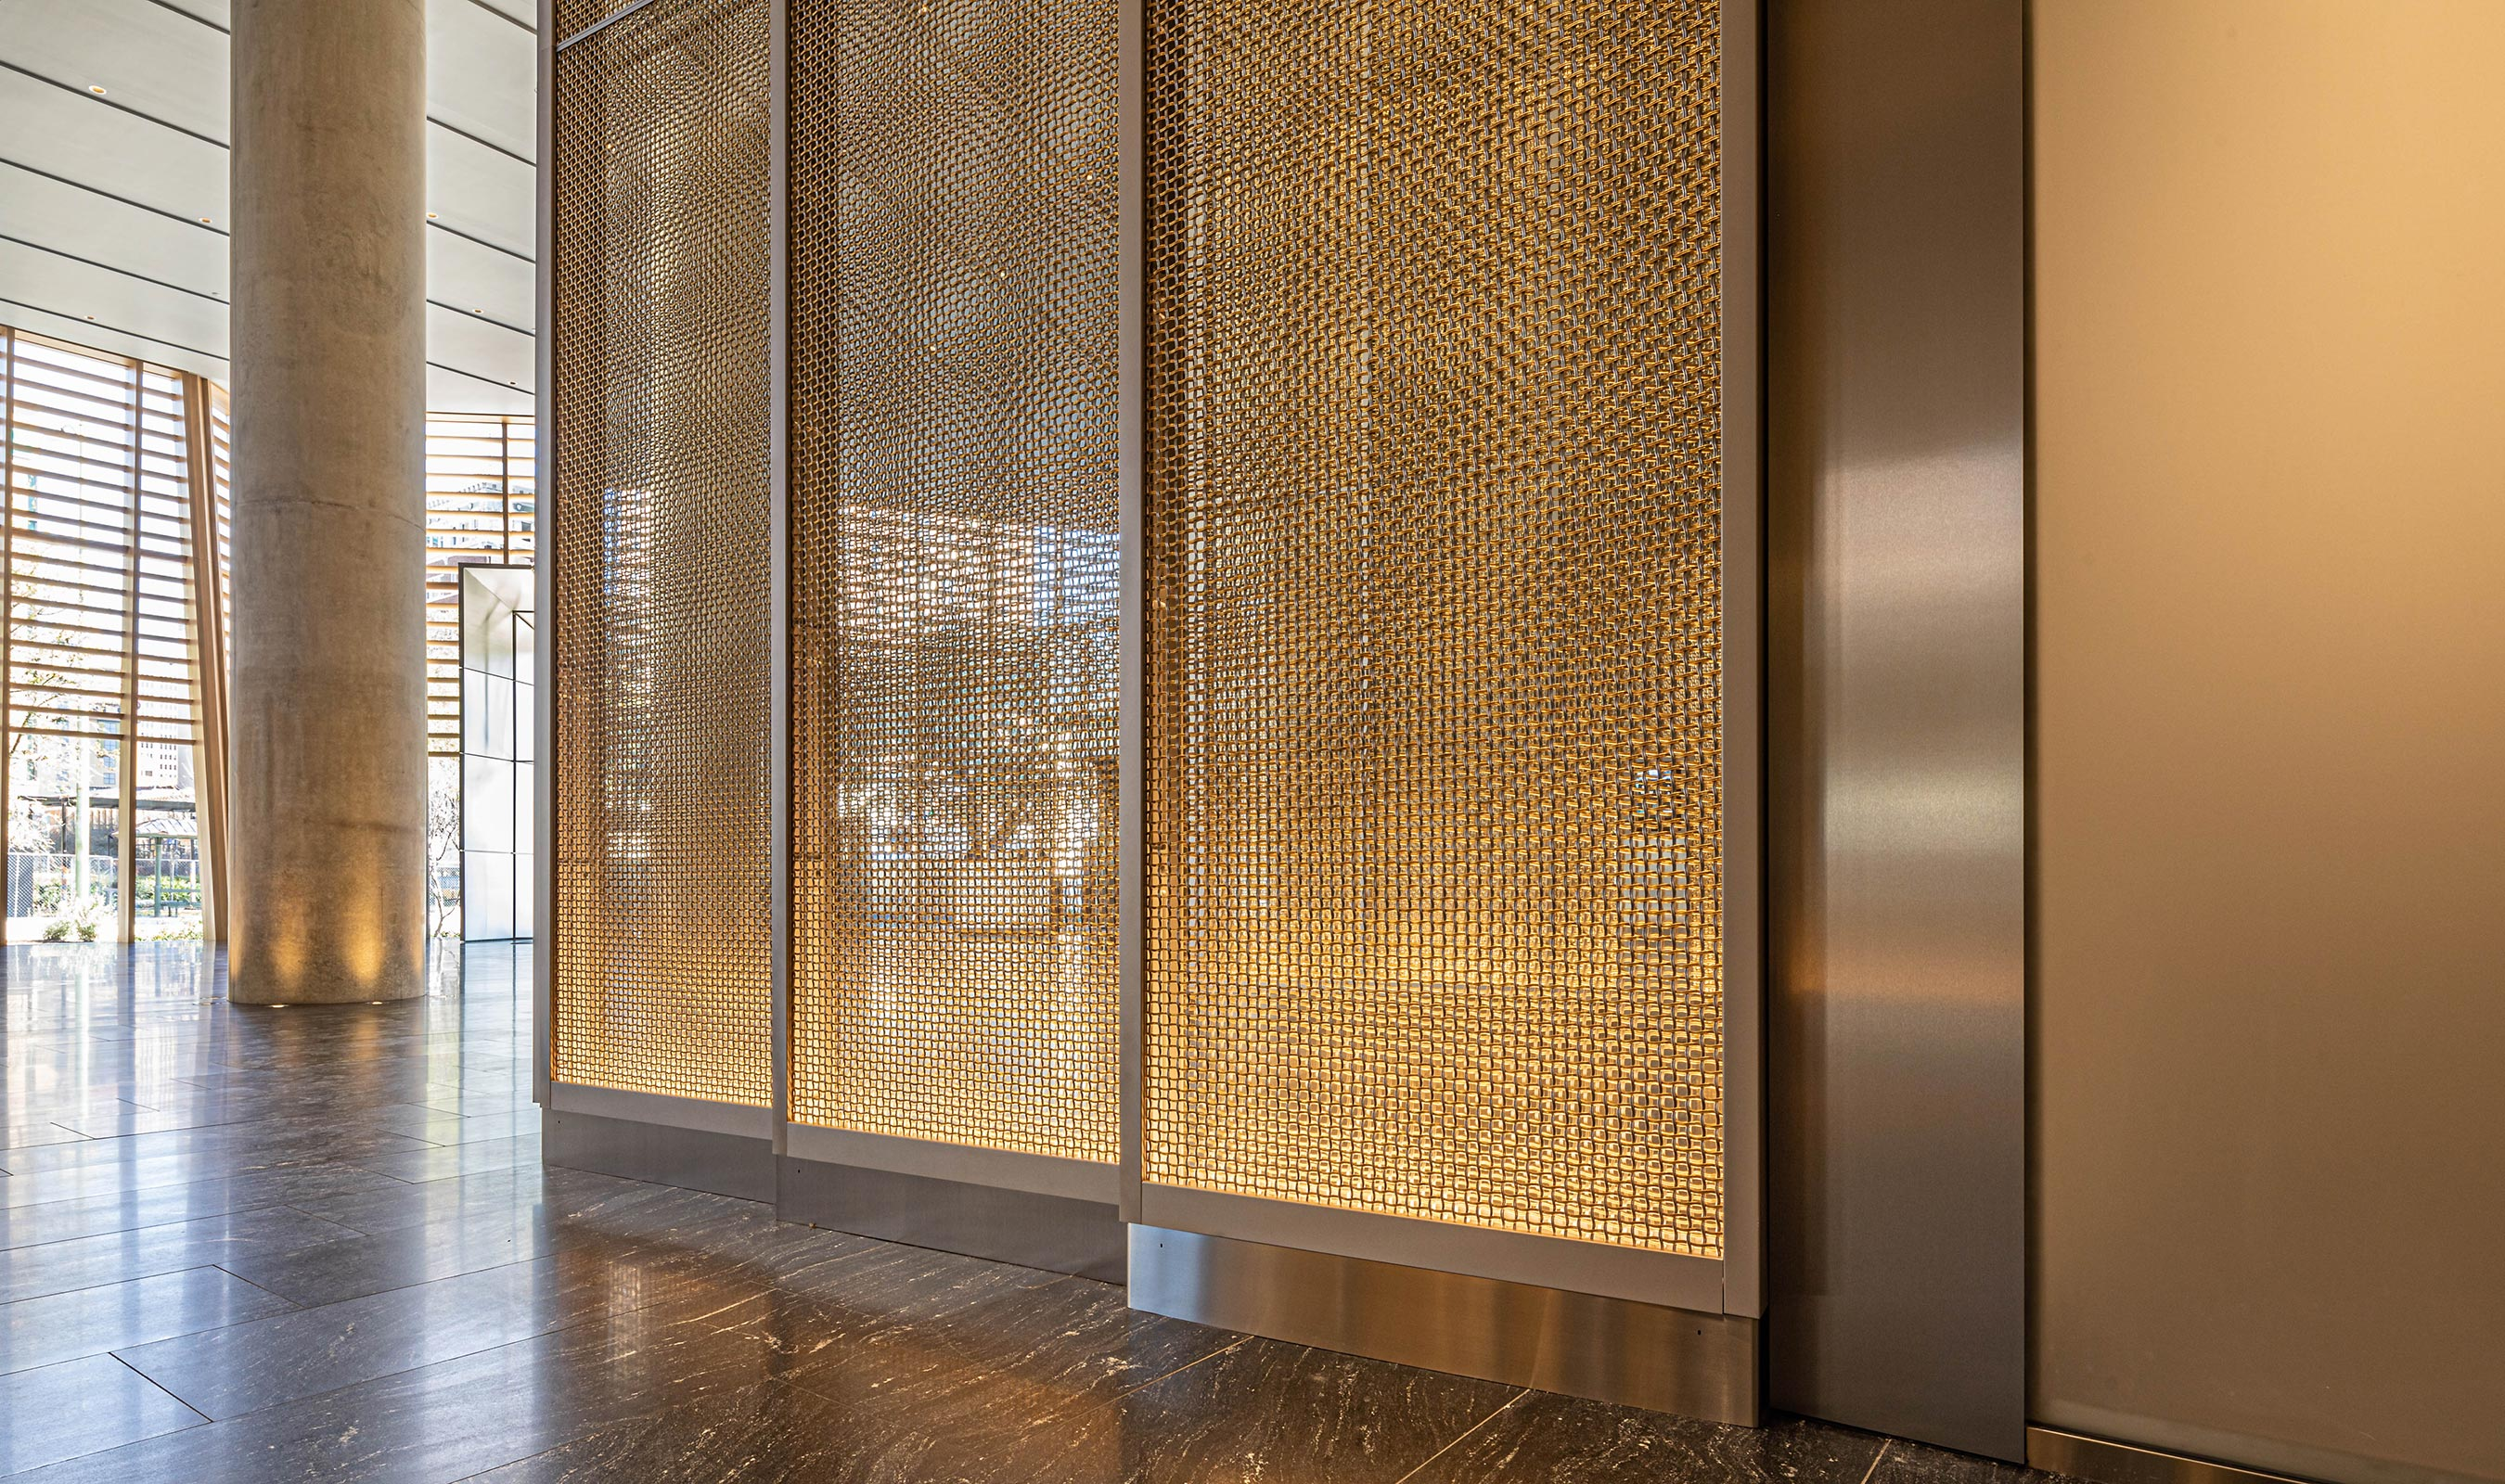 Banker Wire's M22-80 adds a sense of movement and curvature to the feature wall at Frost Tower.